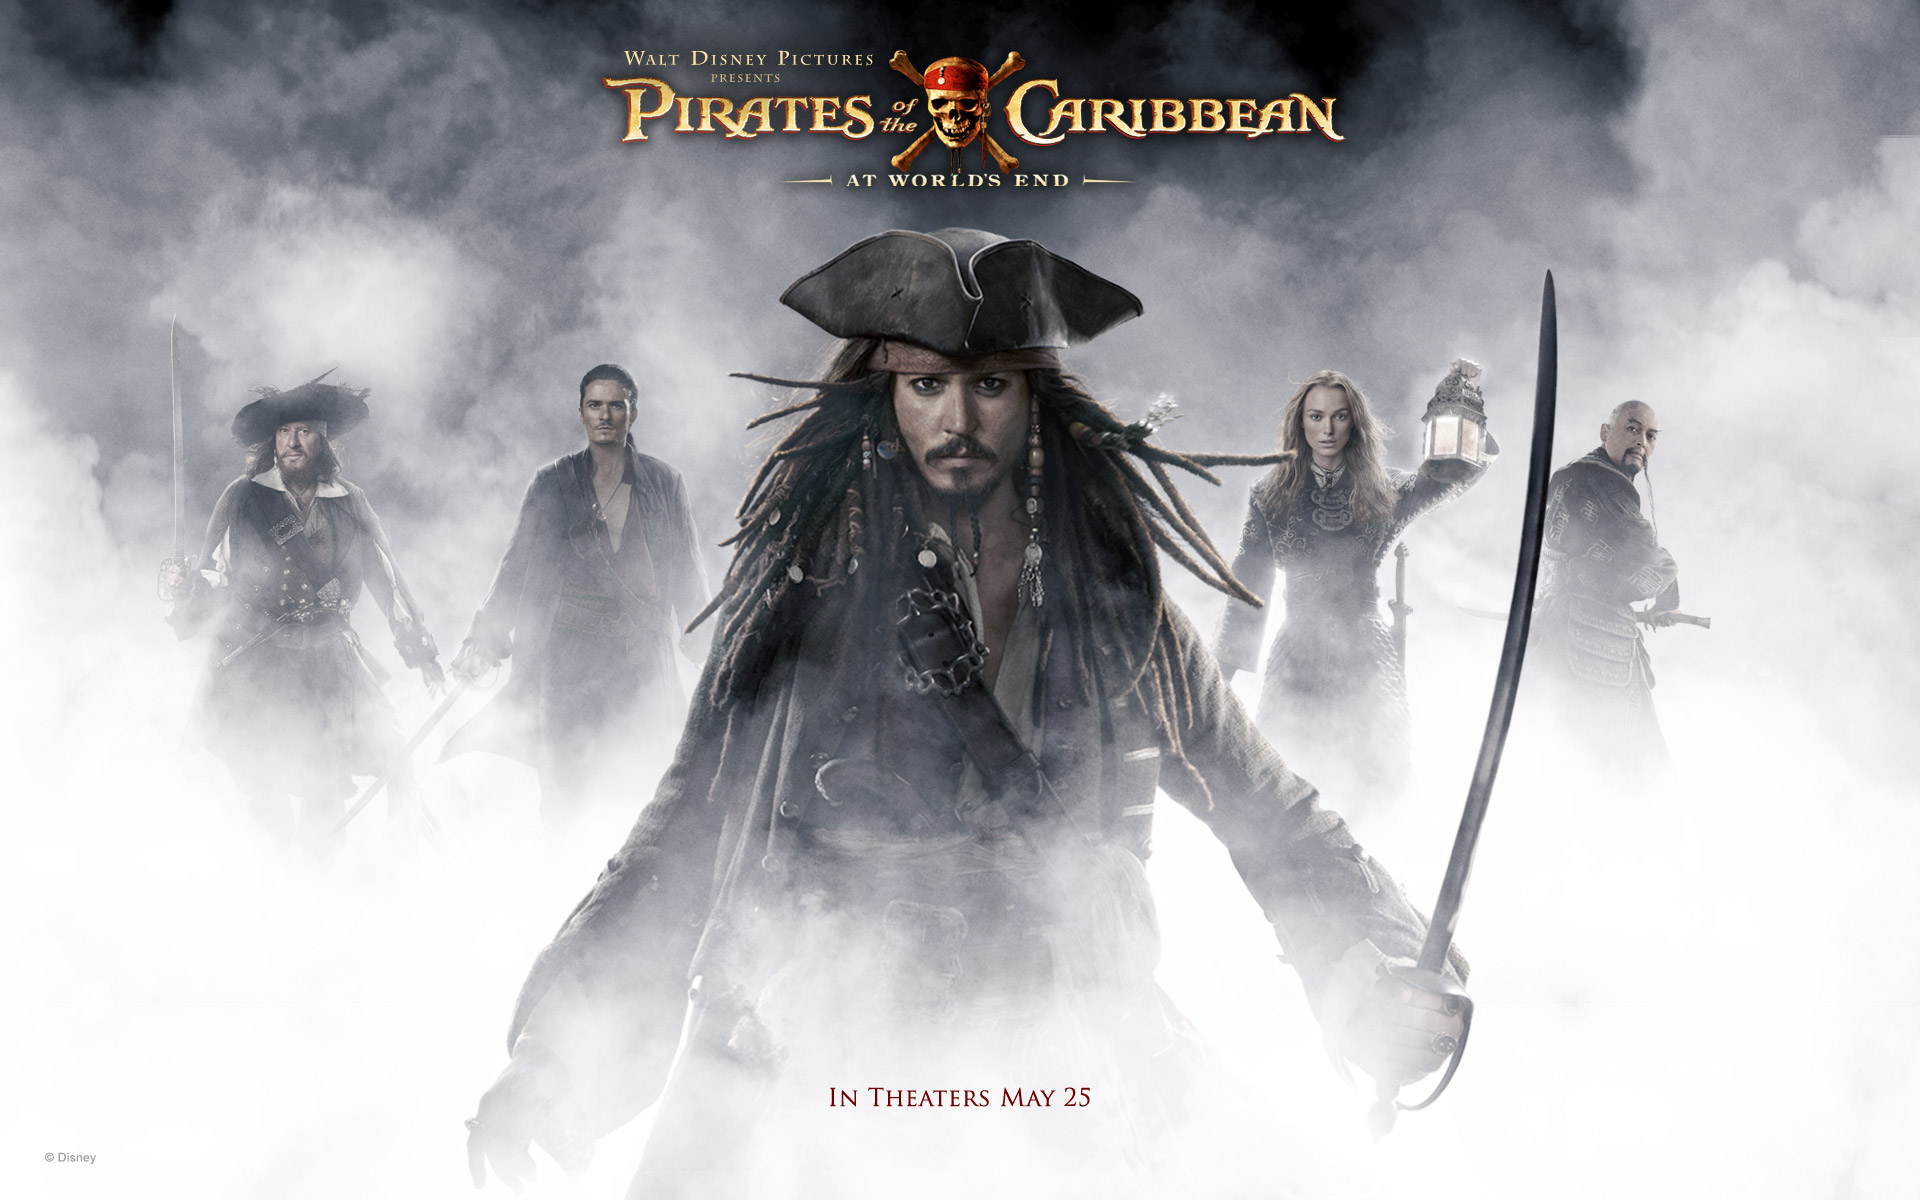 Pirates of the caribbean captain jack sparrow hd wallpaper altavistaventures Image collections